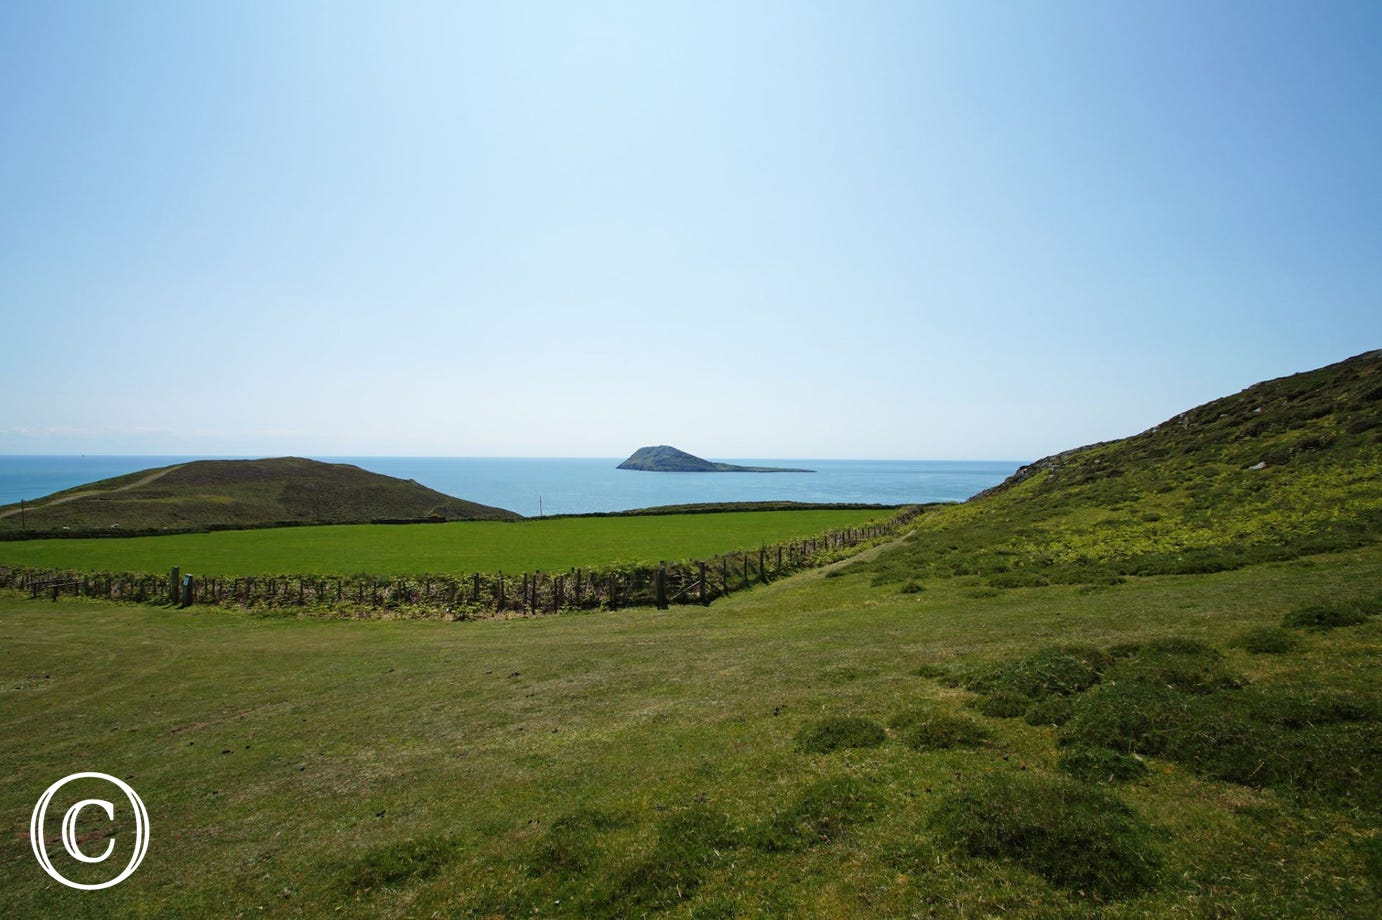 Boat trips are available from Porth Meudwy (3 miles) to Bardsey Island